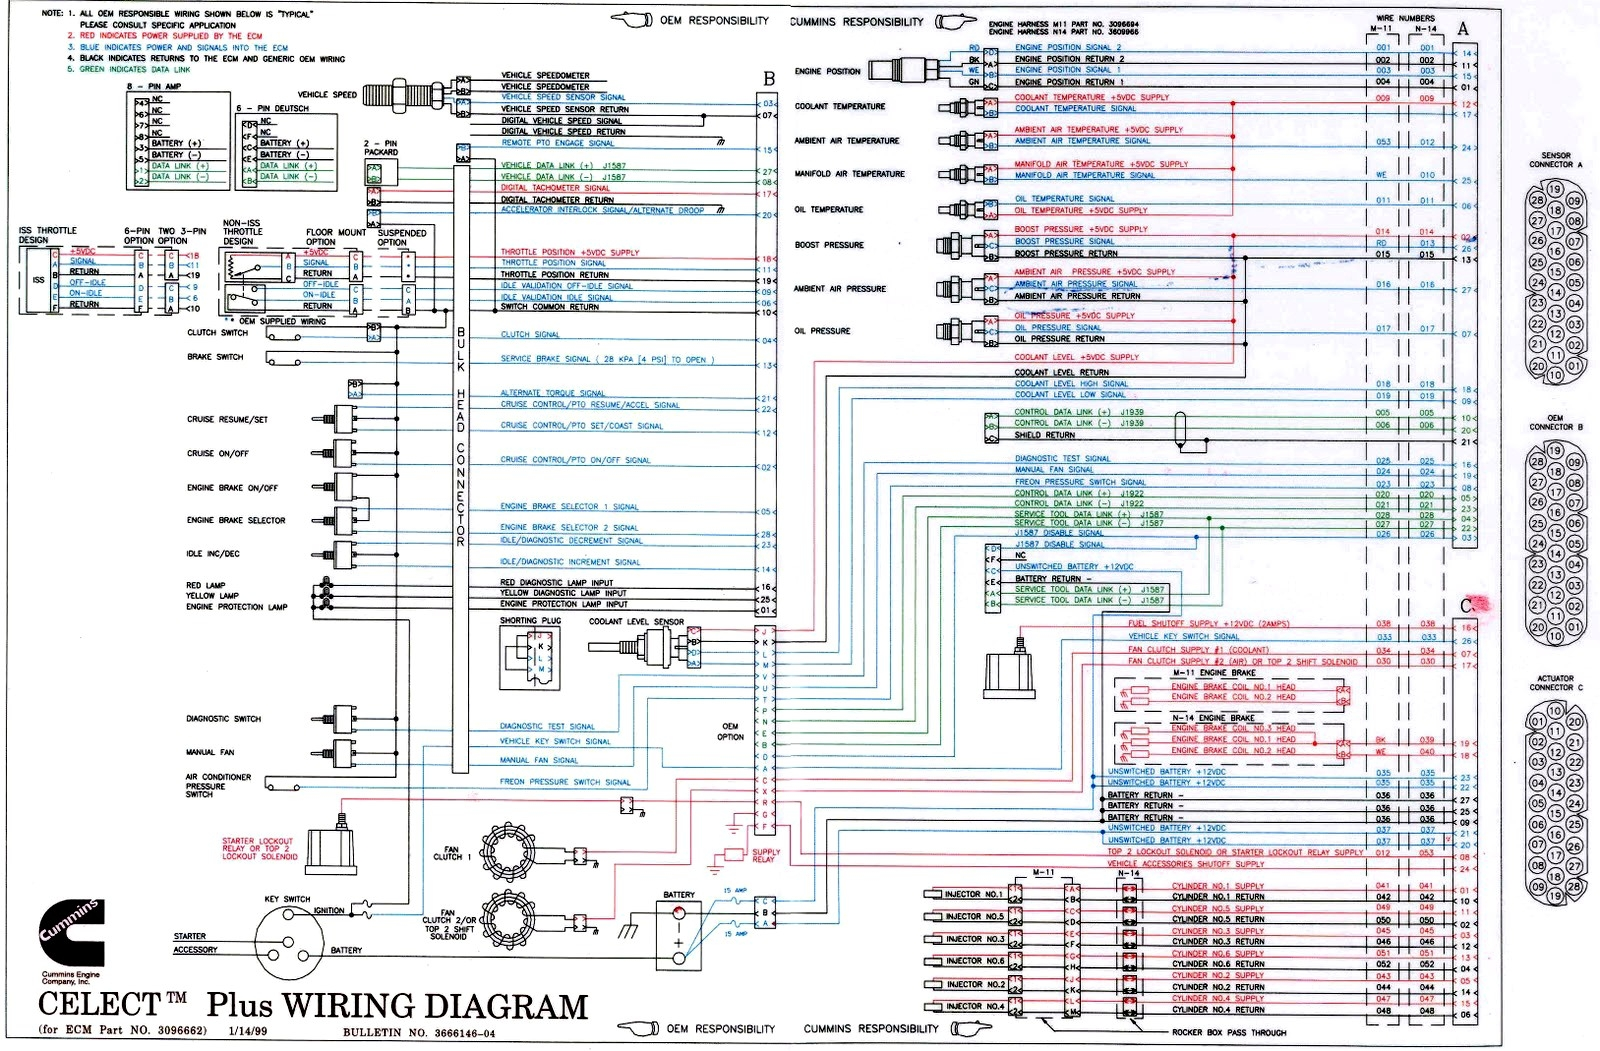 cummins celect ecm wiring diagram Download-cummins n14 plus engine diagram circuit diagram symbols u2022 rh veturecapitaltrust co Volvo VNL Truck Wiring 12-h